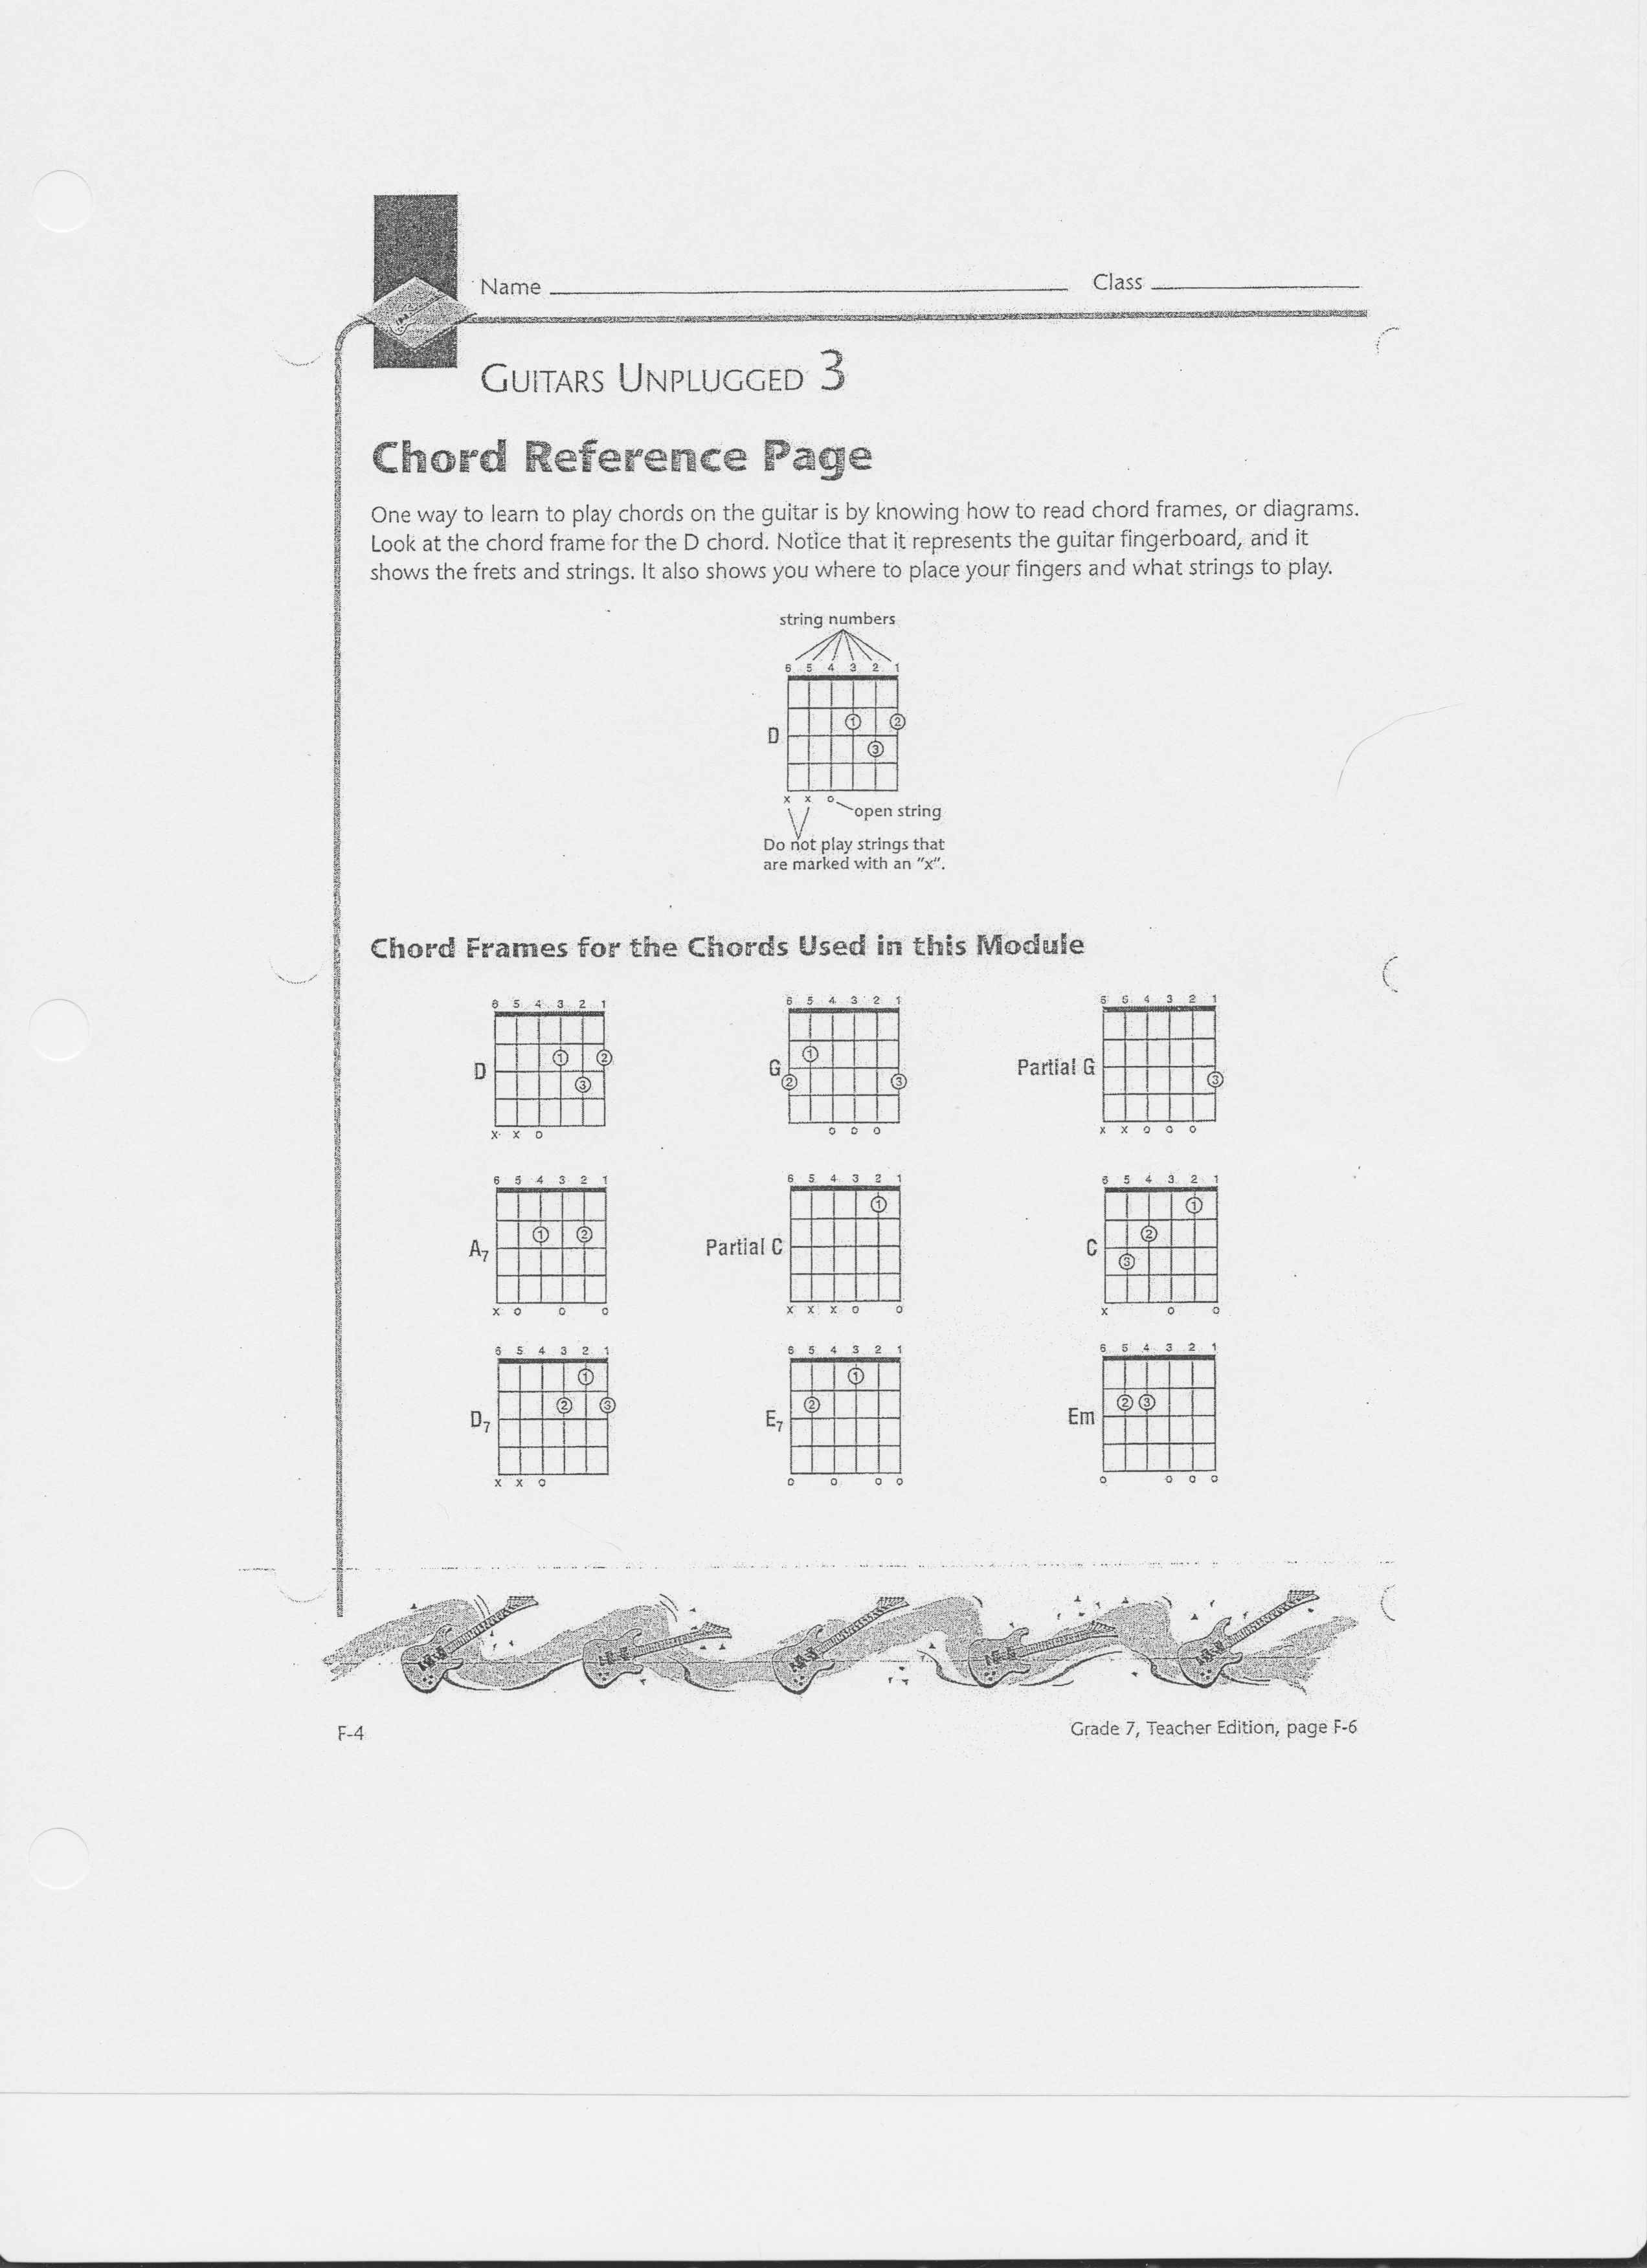 Torete with guitar chords gallery guitar chords examples tadhana chords ultimate guitar gallery guitar chords examples pasko na naman guitar chords gallery guitar chords hexwebz Choice Image